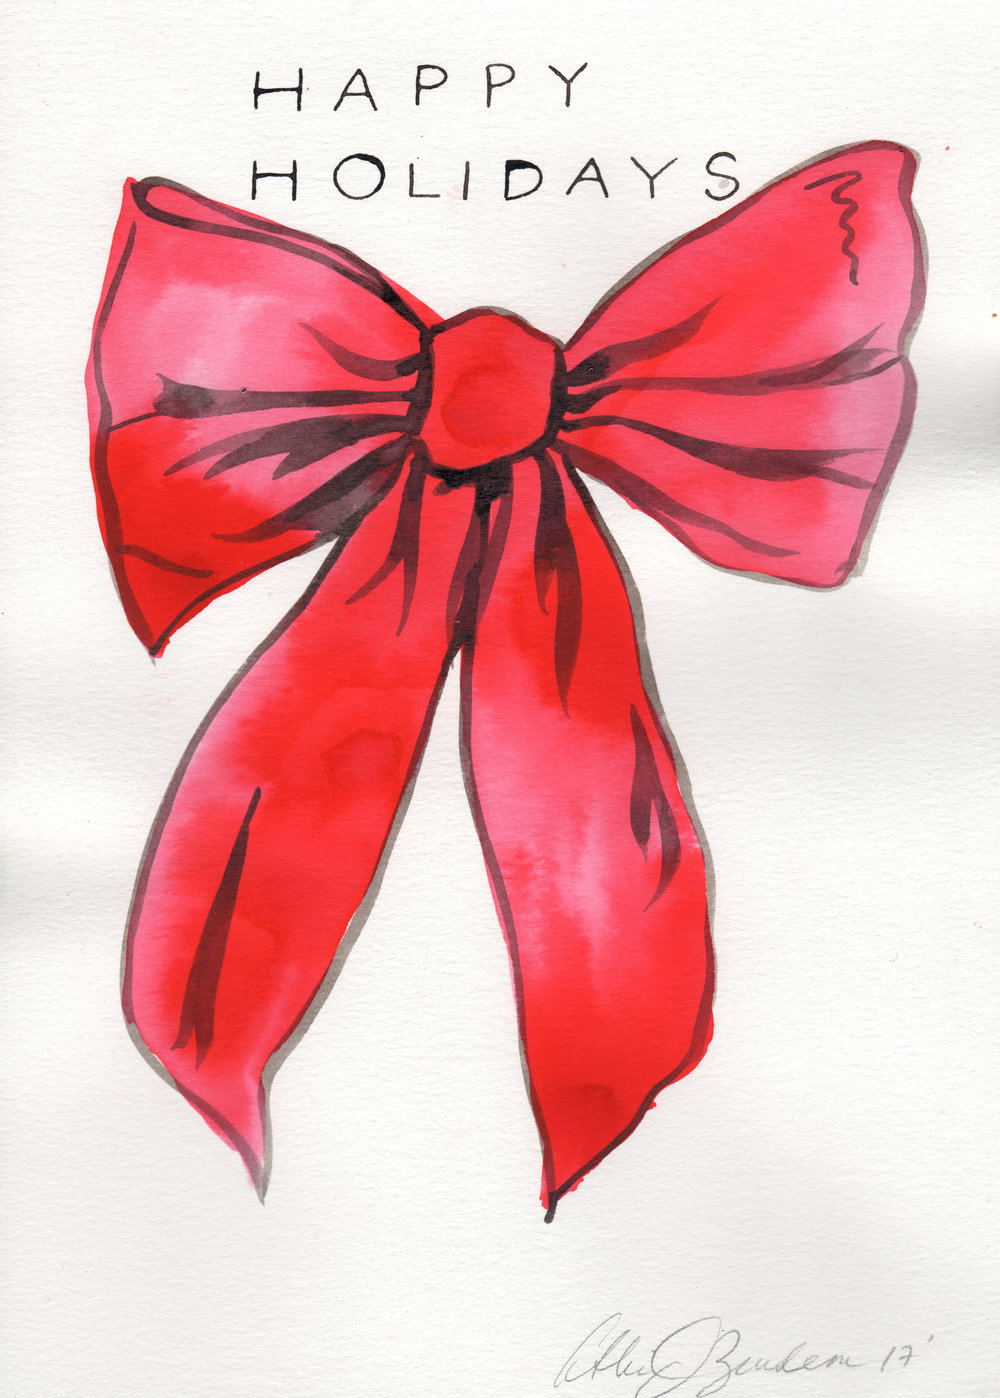 happy holidays red bow.jpg